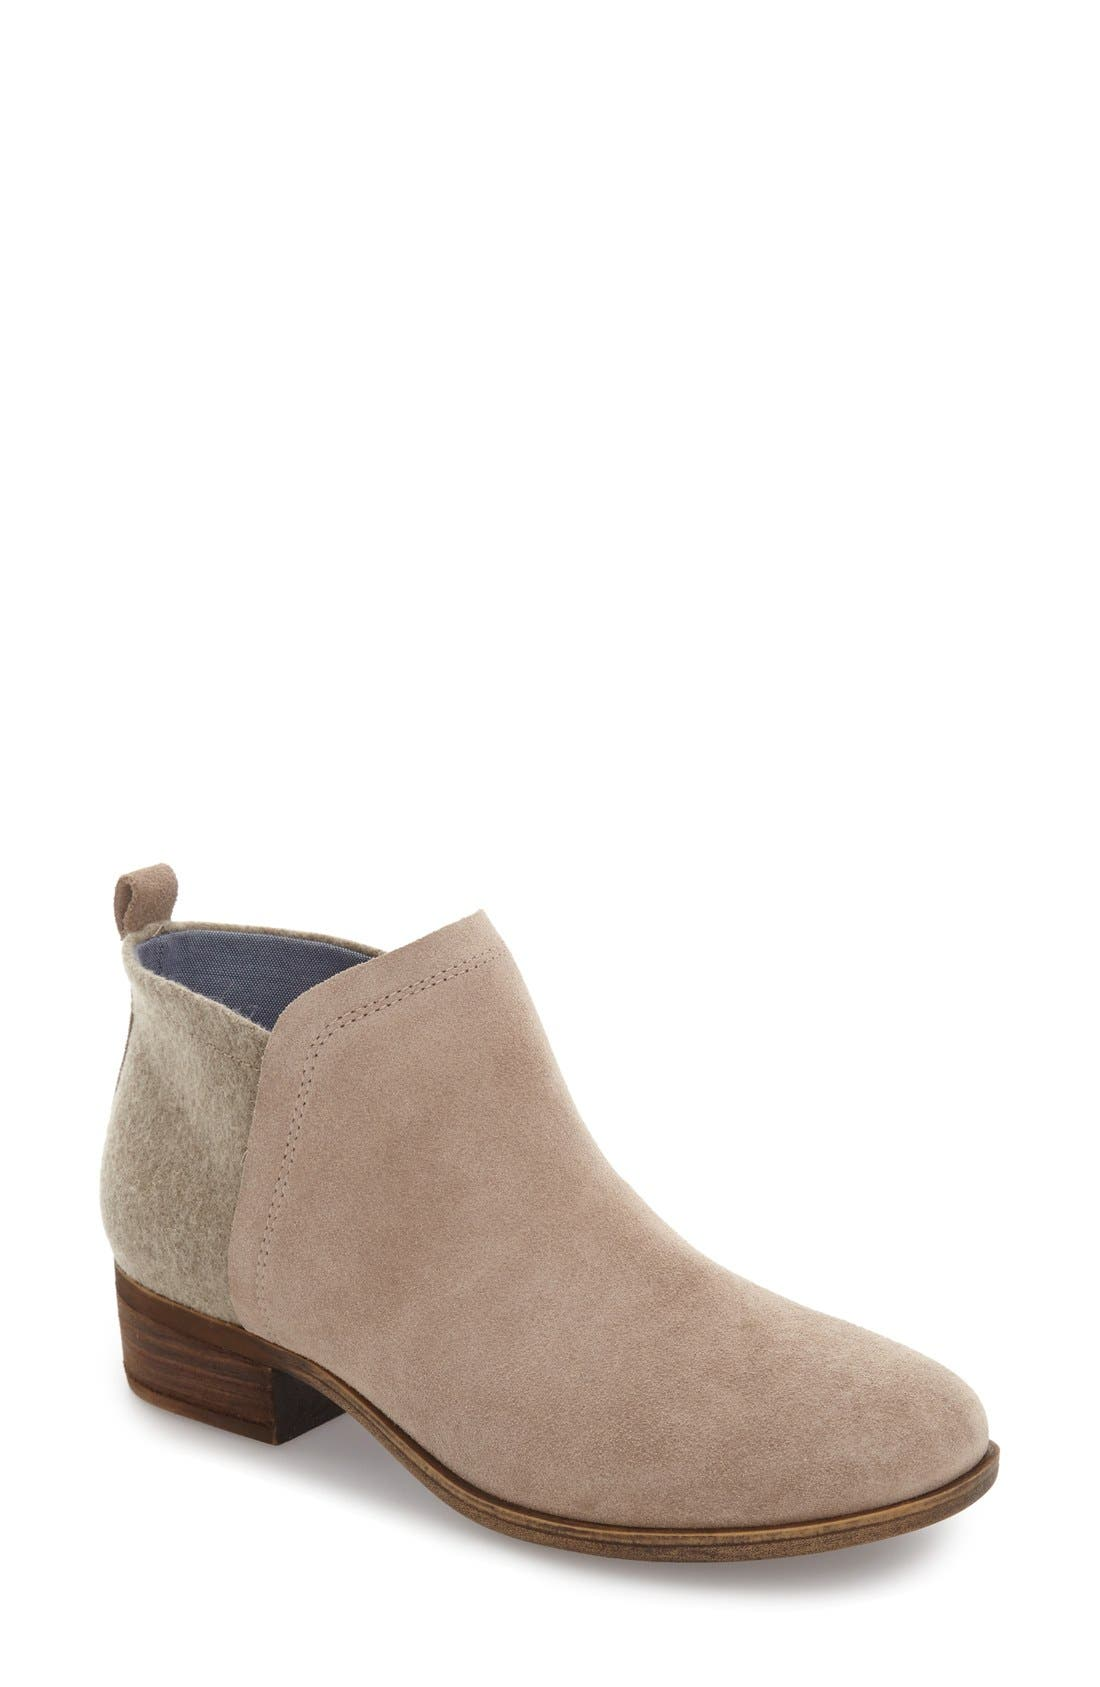 Deia Zip Bootie,                             Main thumbnail 1, color,                             Natural Suede